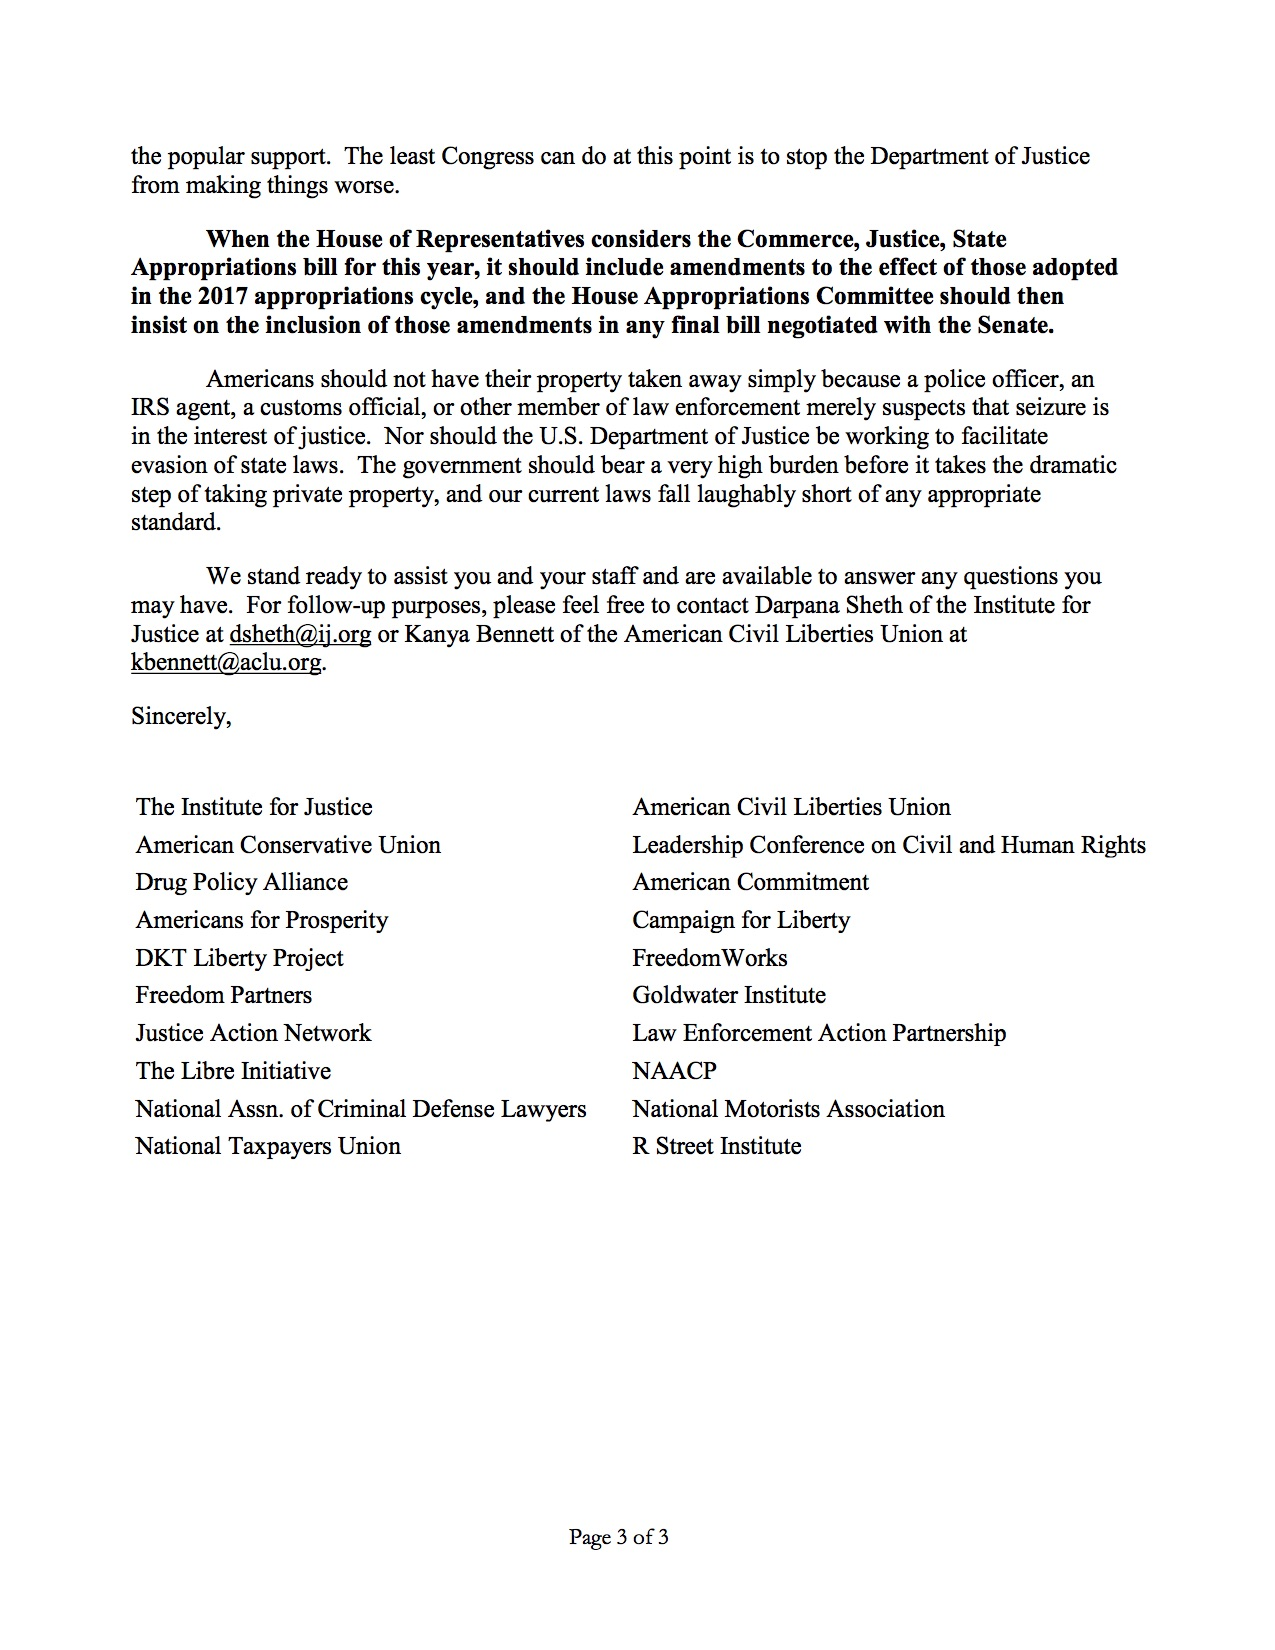 3Forfeiture_Coalition_-_July_2018_Letter_to_House_Members_1_.jpg